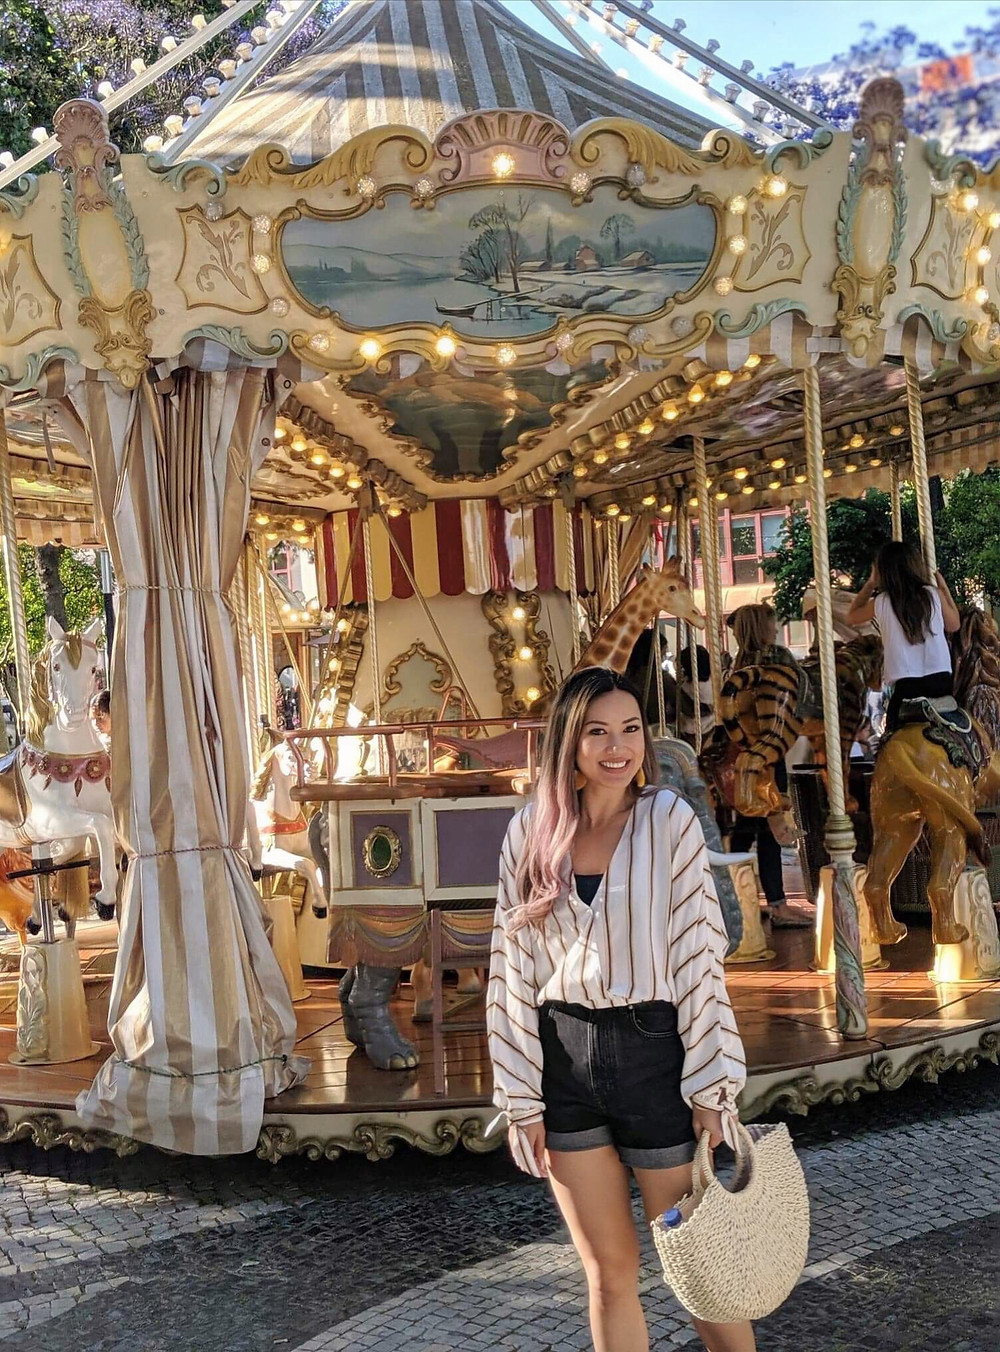 photograph of girl fashion travel blogger in fun boating outfit exploring downtown city center of Old Town Cascais Portugal, admiring the fun carousel downtown with lights.